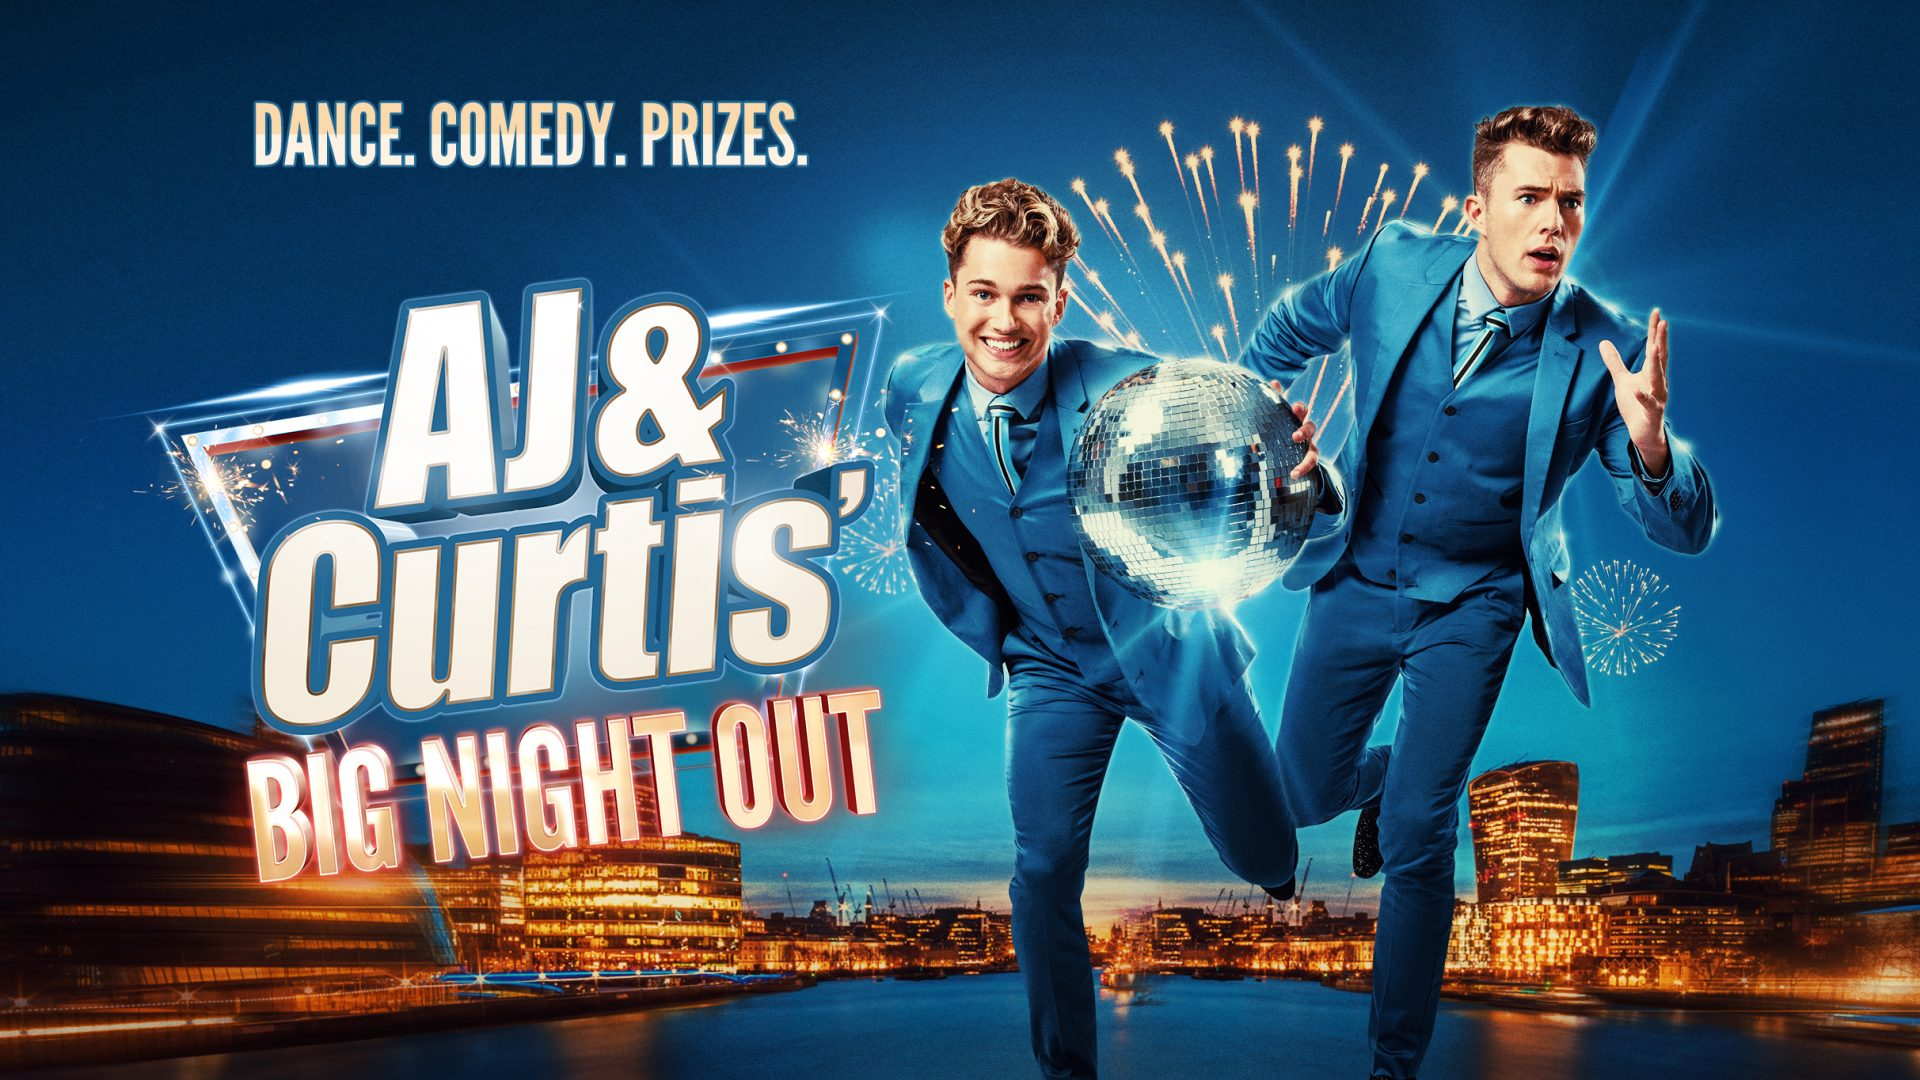 AJ and Curtis' Big Night Out